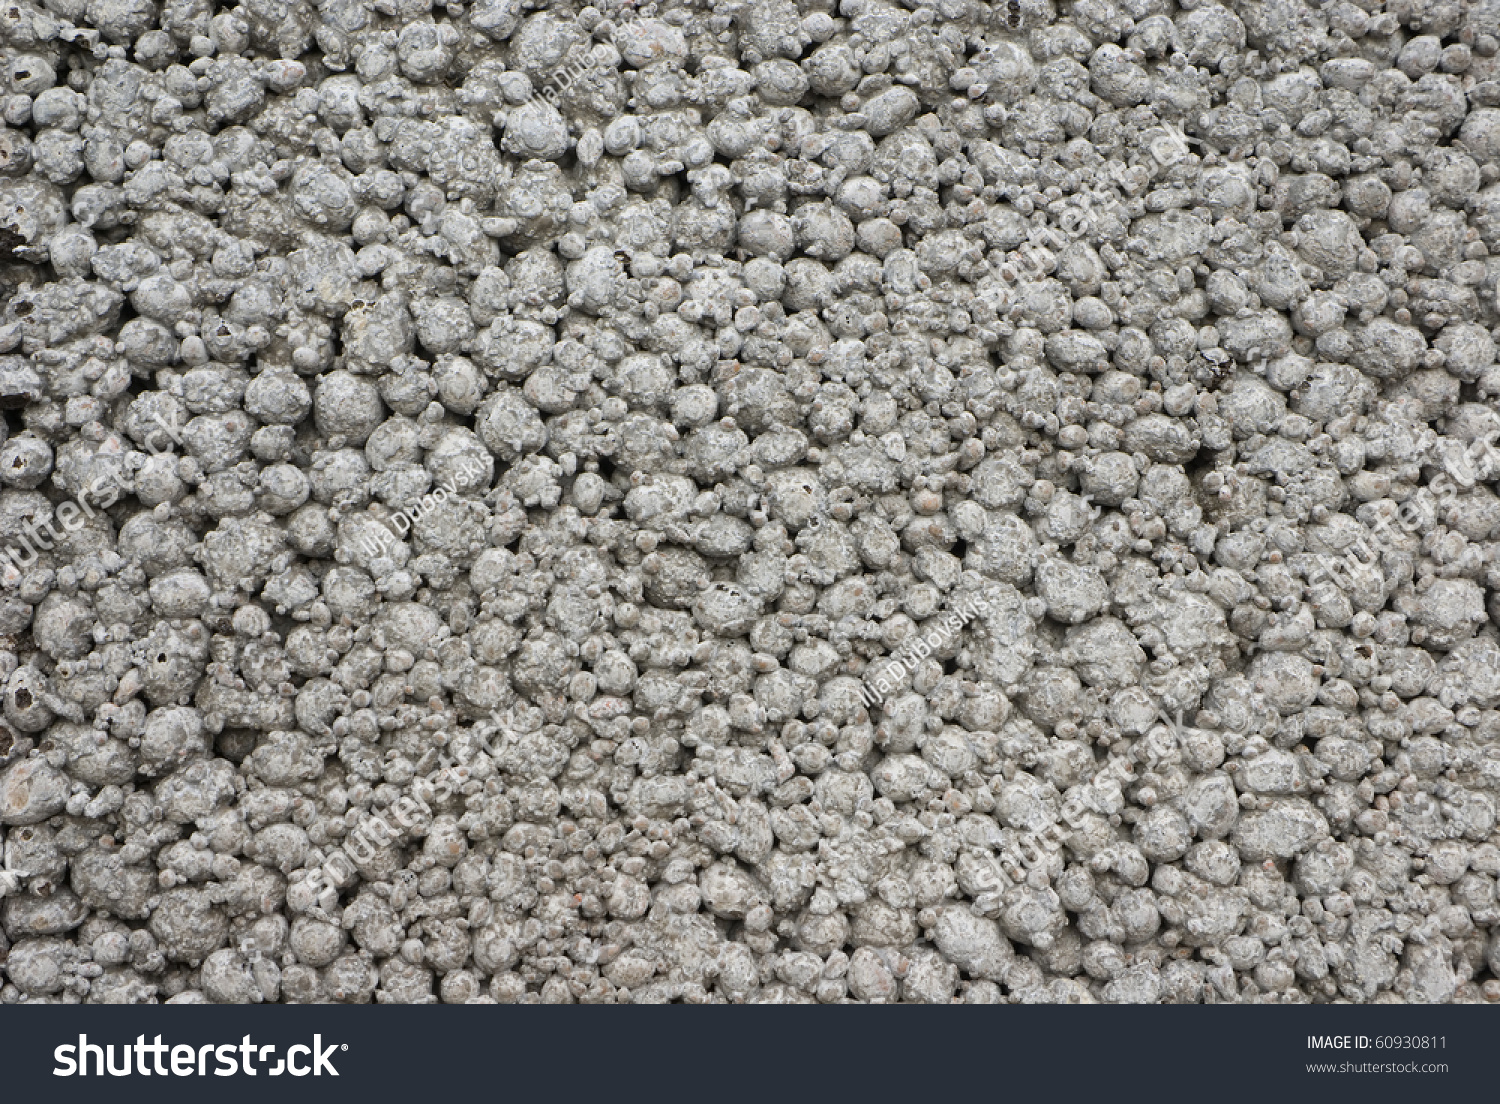 Aerated Concrete Texture Stock Photo 60930811 - Shutterstock